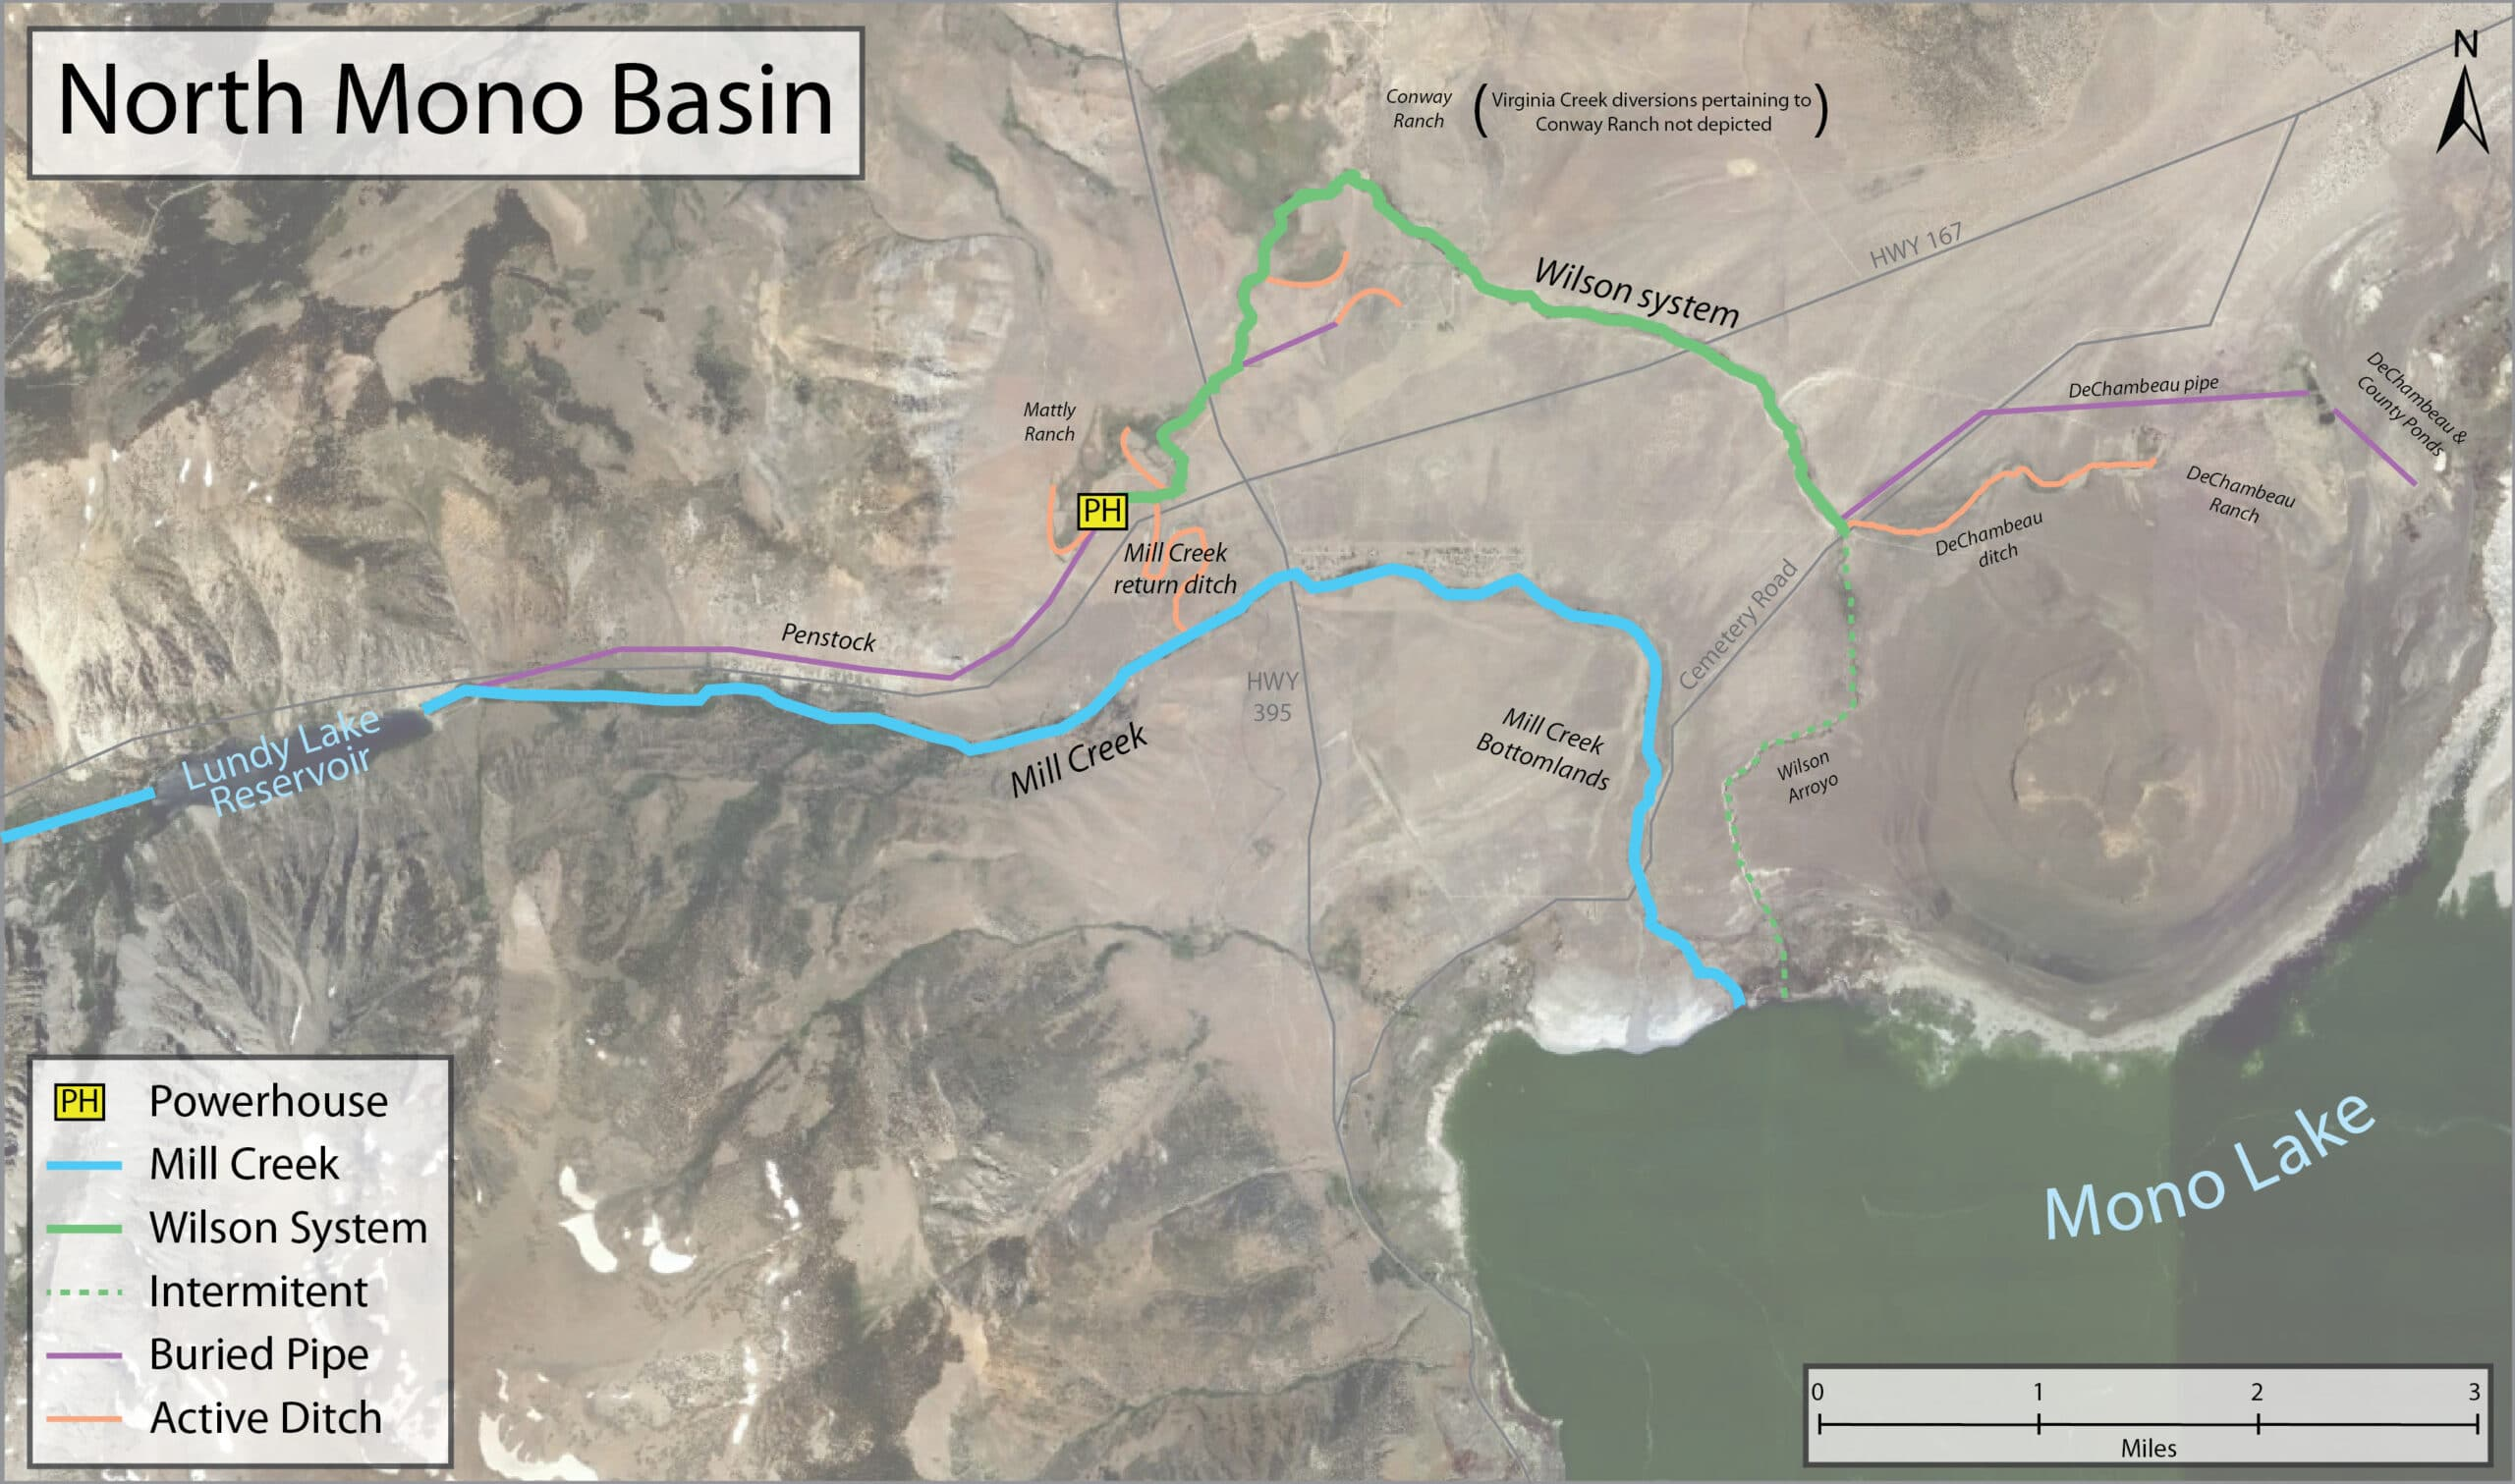 Map of the North Mono Basin with Mono Lake in the bottom right corner and Mill Creek, the Wilson System, buried pipe, active ditches, and intermittent streams marked on an aerial photograph map.